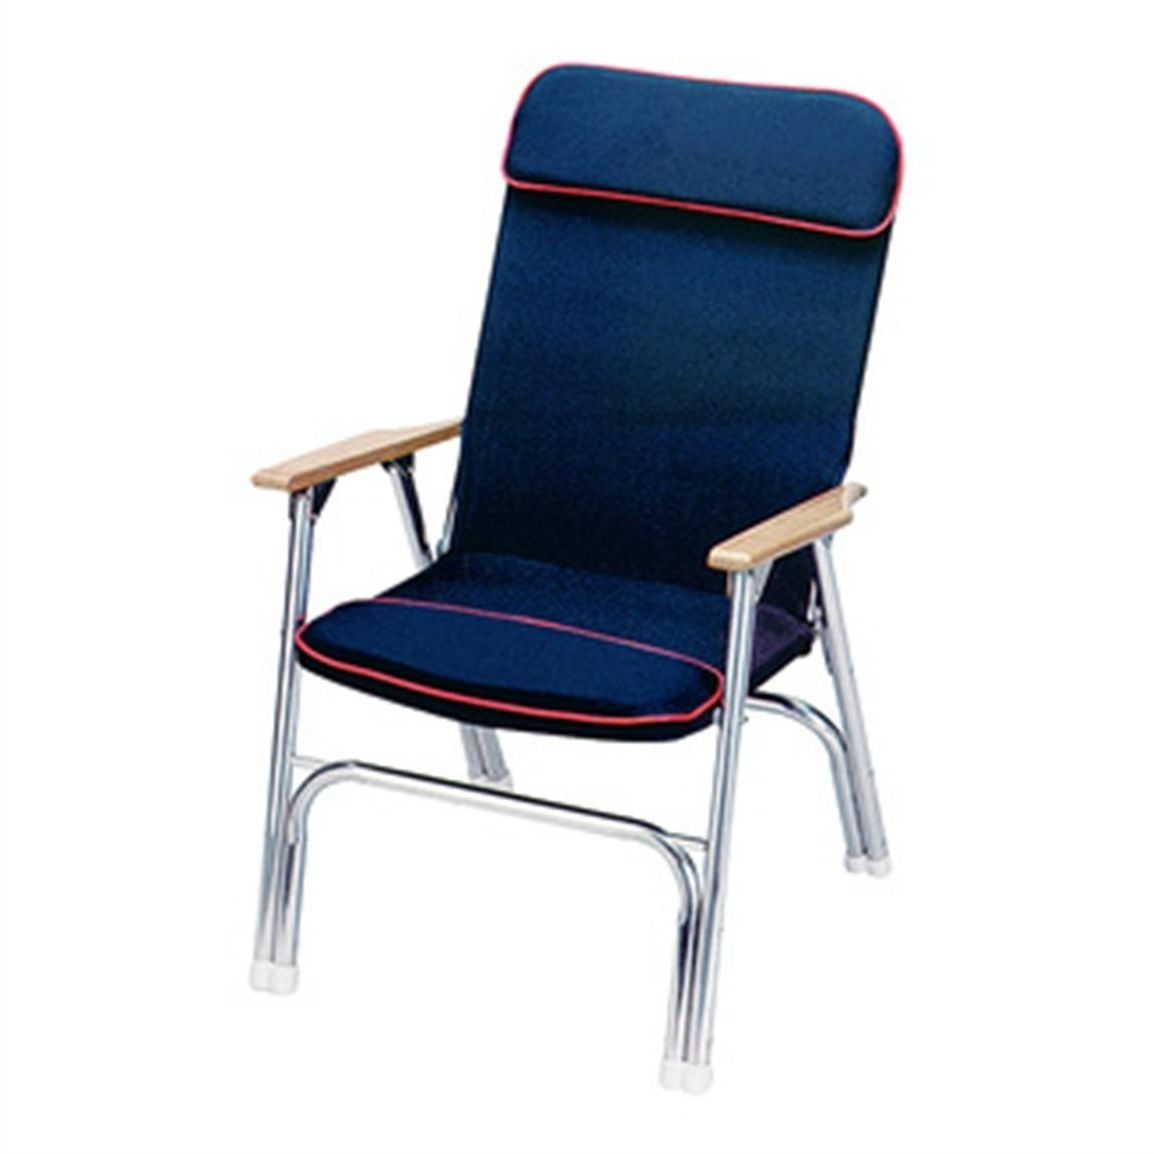 Superieur Folding Chairs For Boats